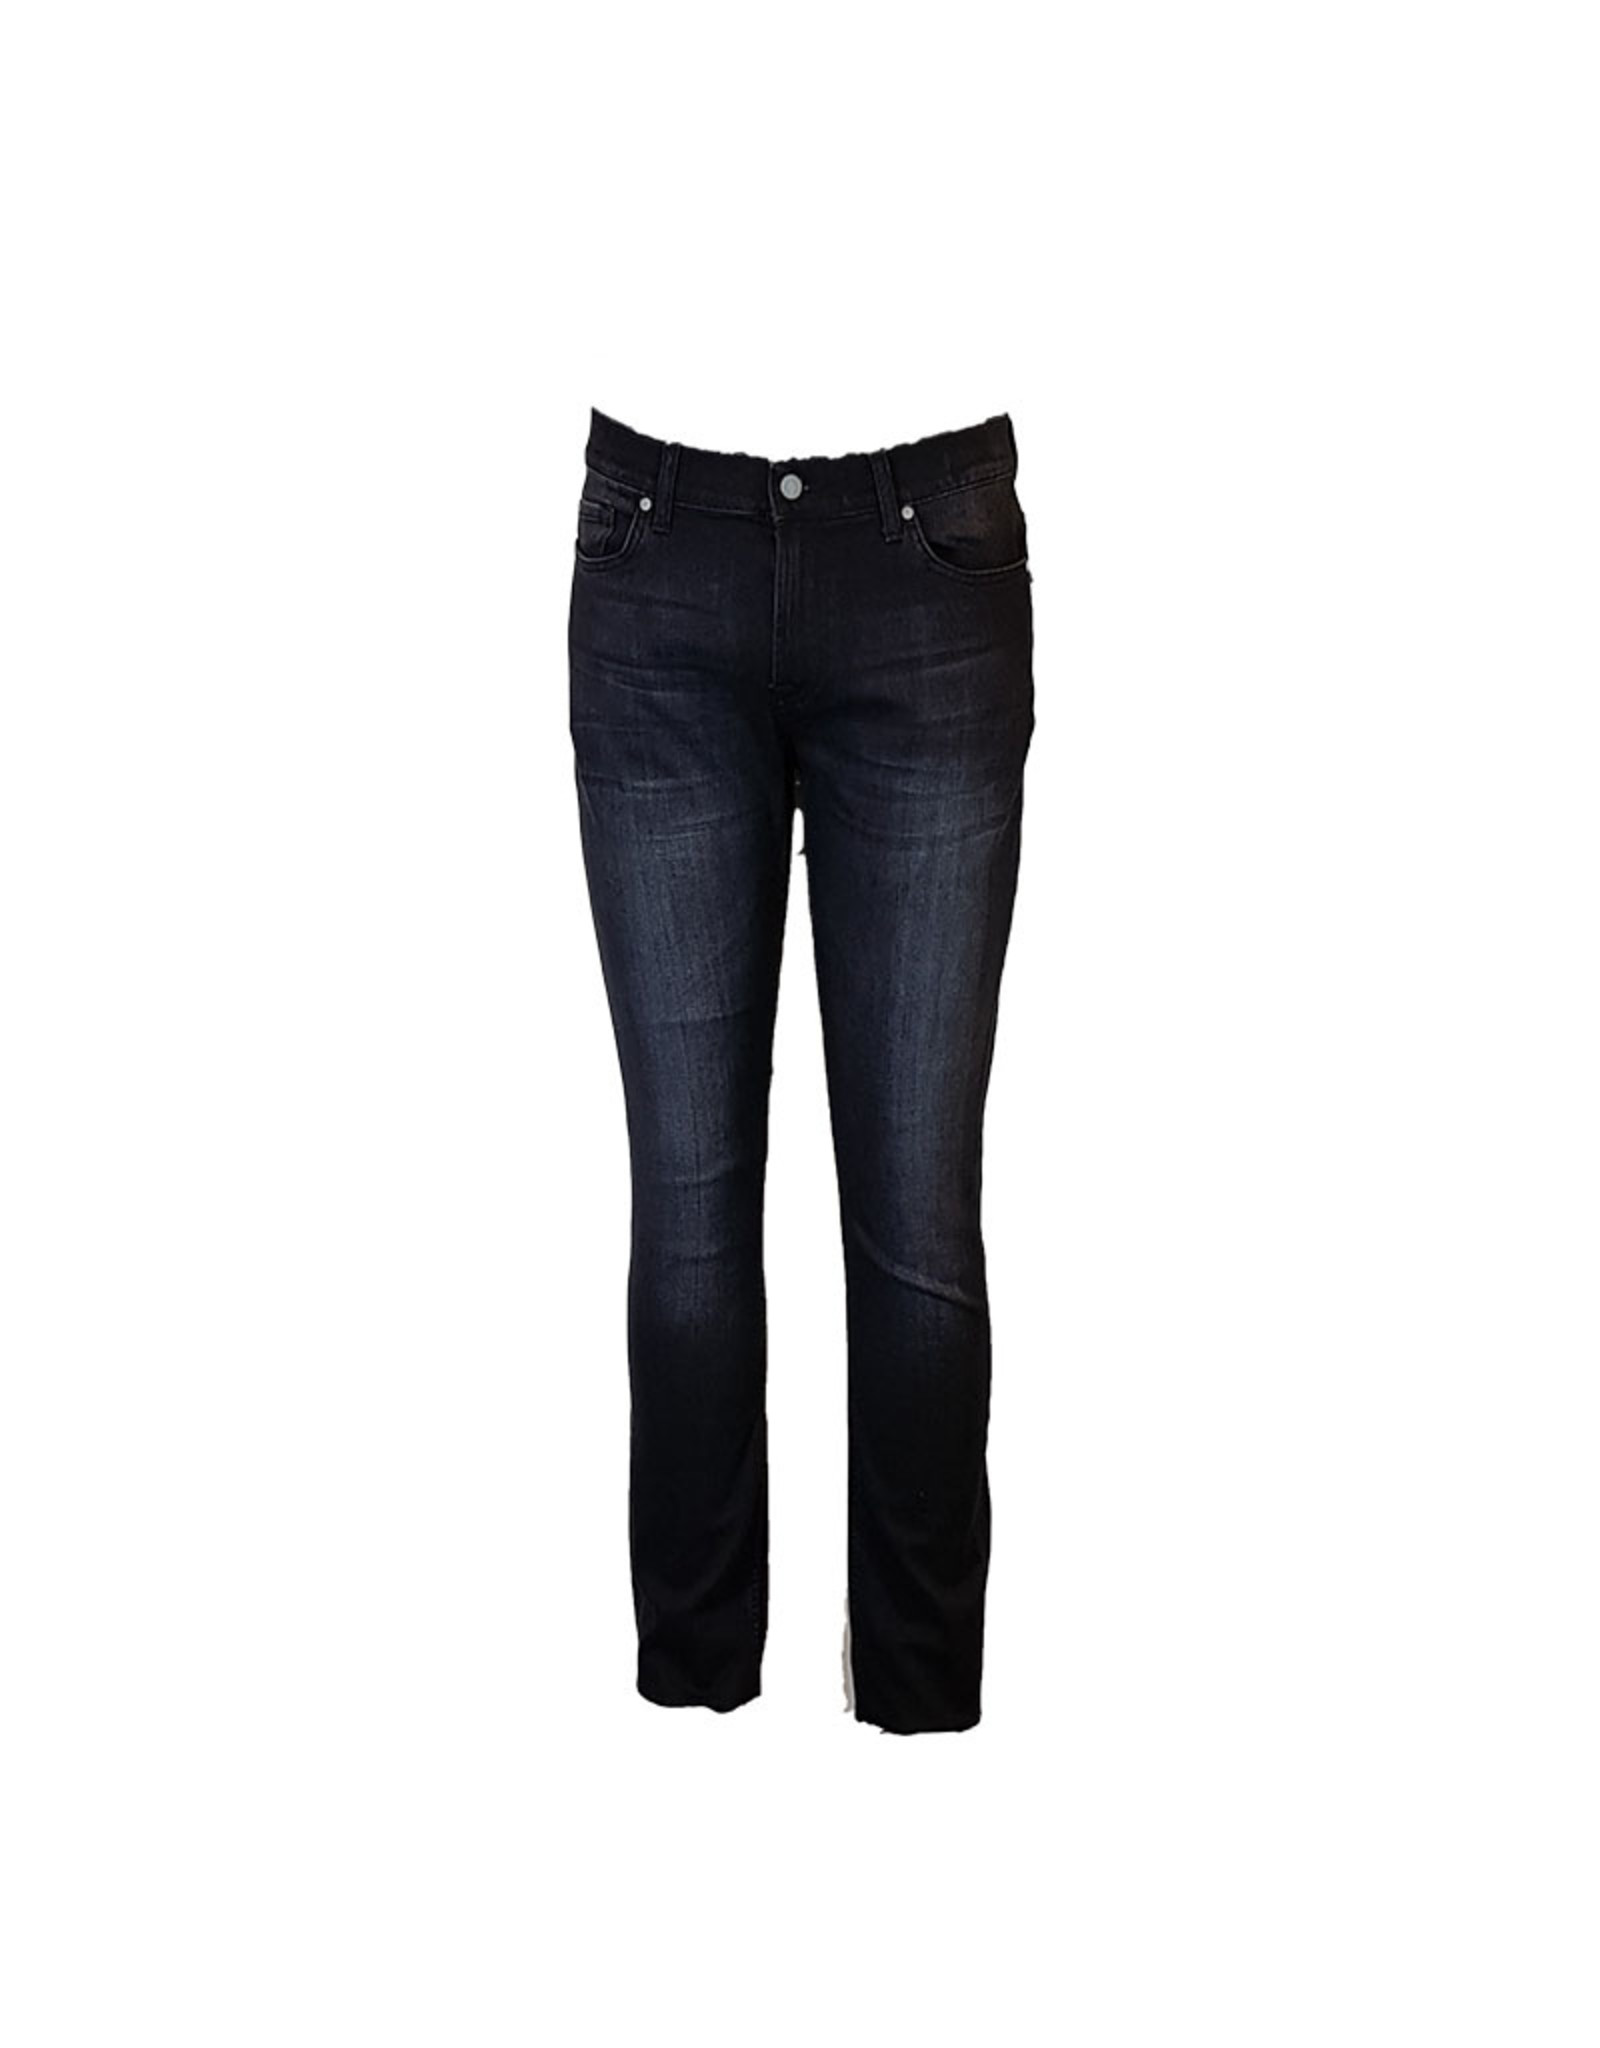 7 For All Mankind 7FAM jeans zwart Ronnie SD4R480AG